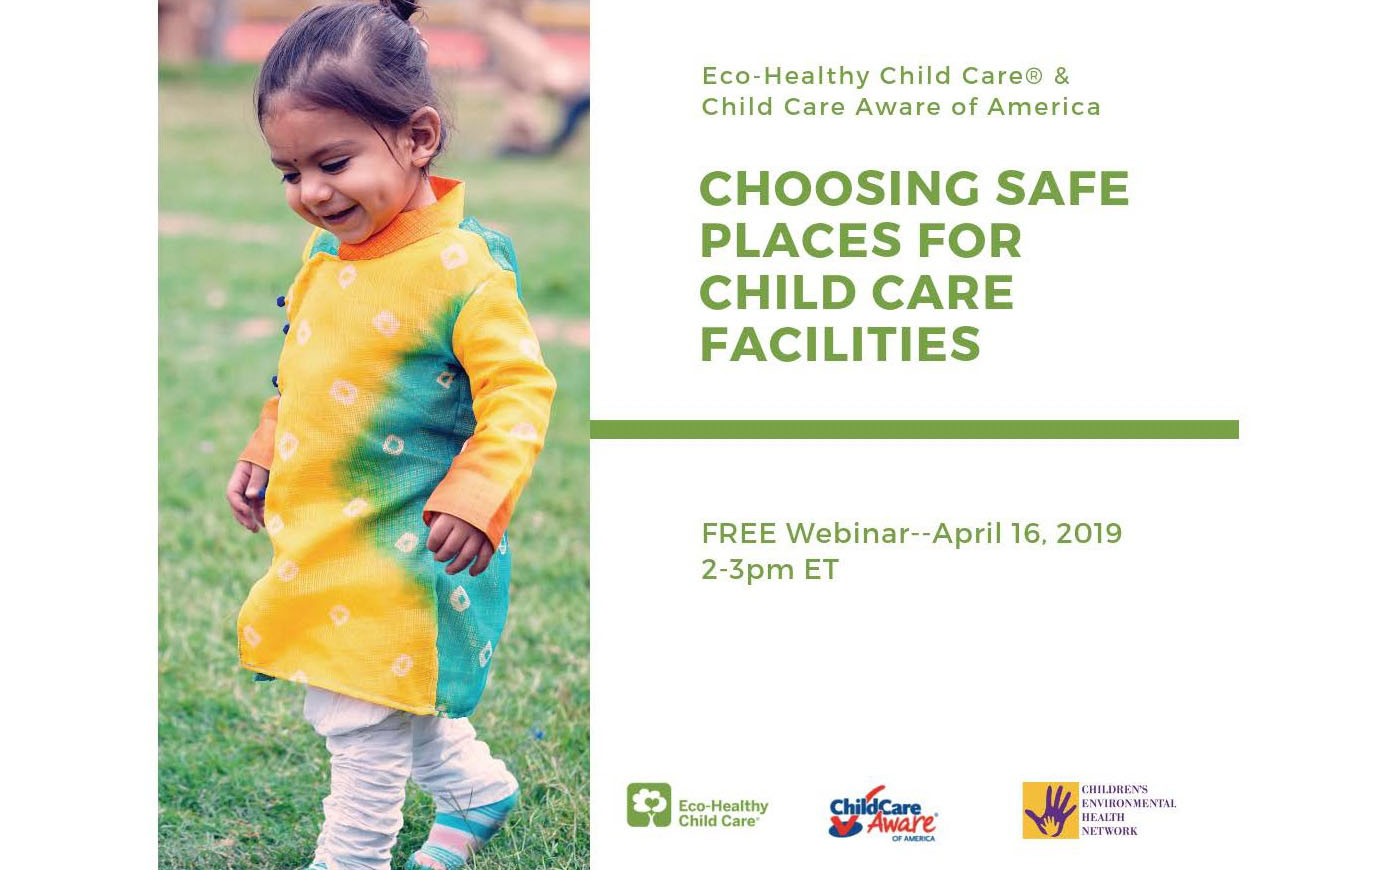 Safe Siting Webinar Announcement 2 20 19_ay